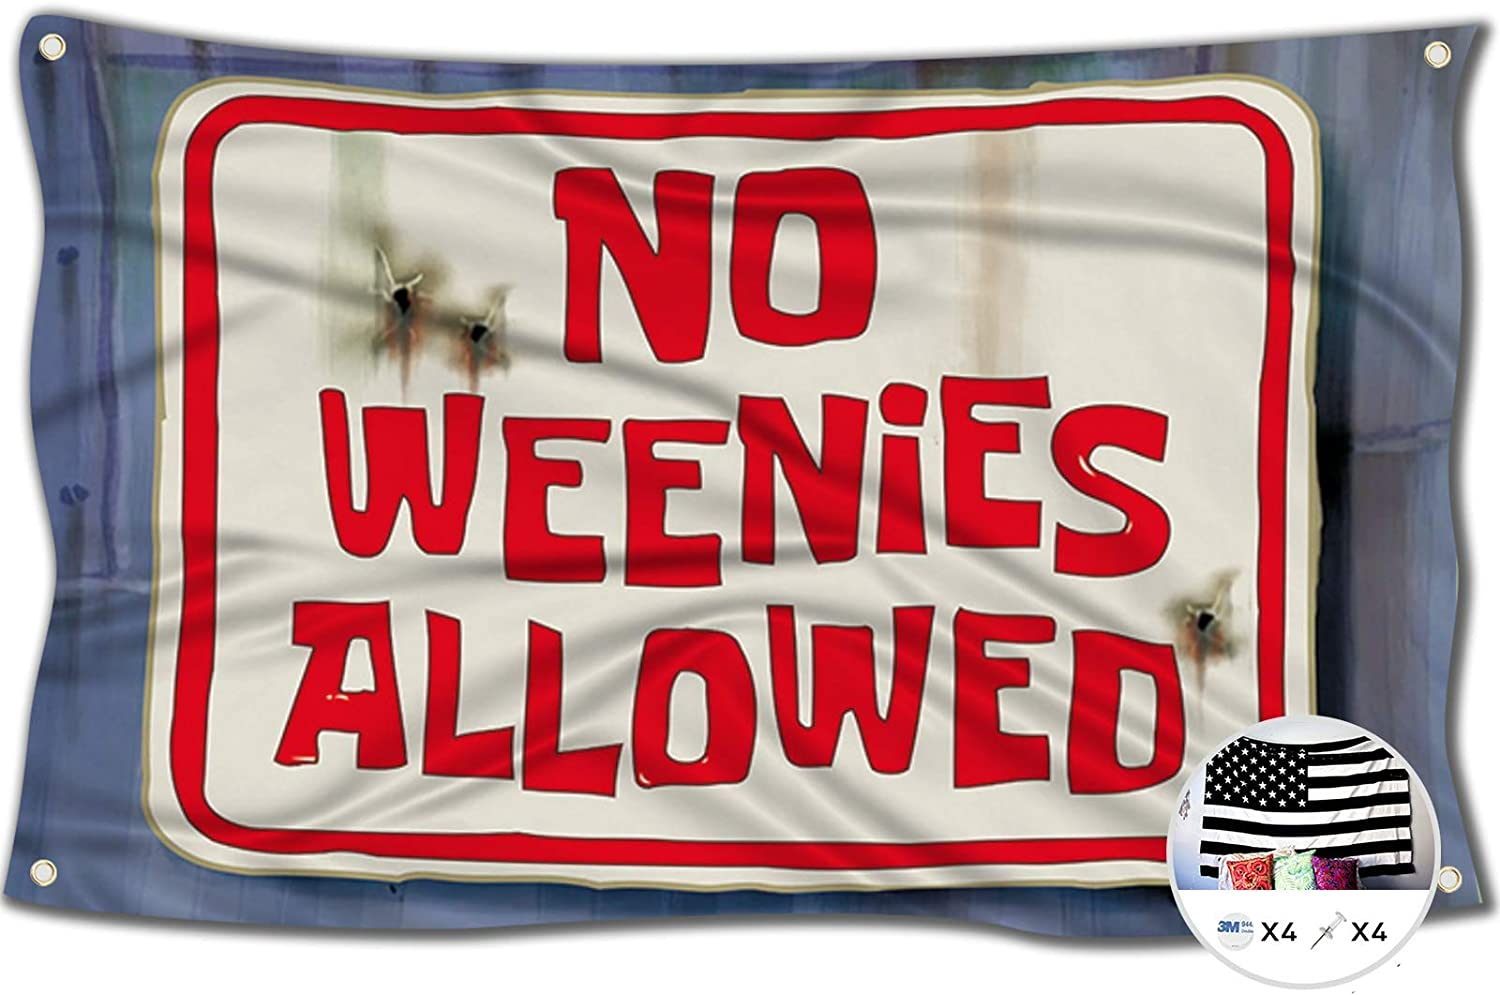 No Weenies Allowed Flag Sponge Bob Tries to Get into The Salty Spitoon 3x5 Feet Banner,Funny Poster UV Resistance Fading & Durable Man Cave Wall Flag for College Dorm Room Decor,Parties,Gift